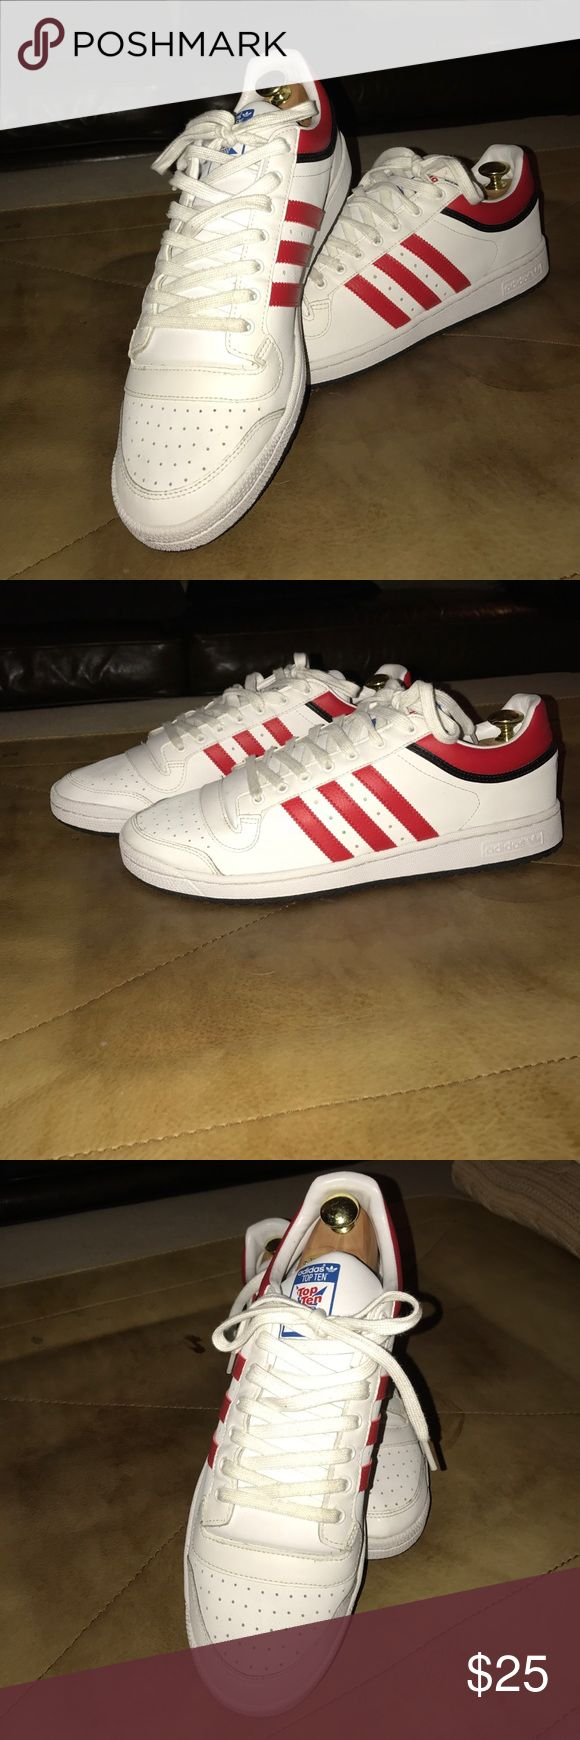 Old school classic style The low top versions of the hi tops you love Adidas Shoes Sneakers